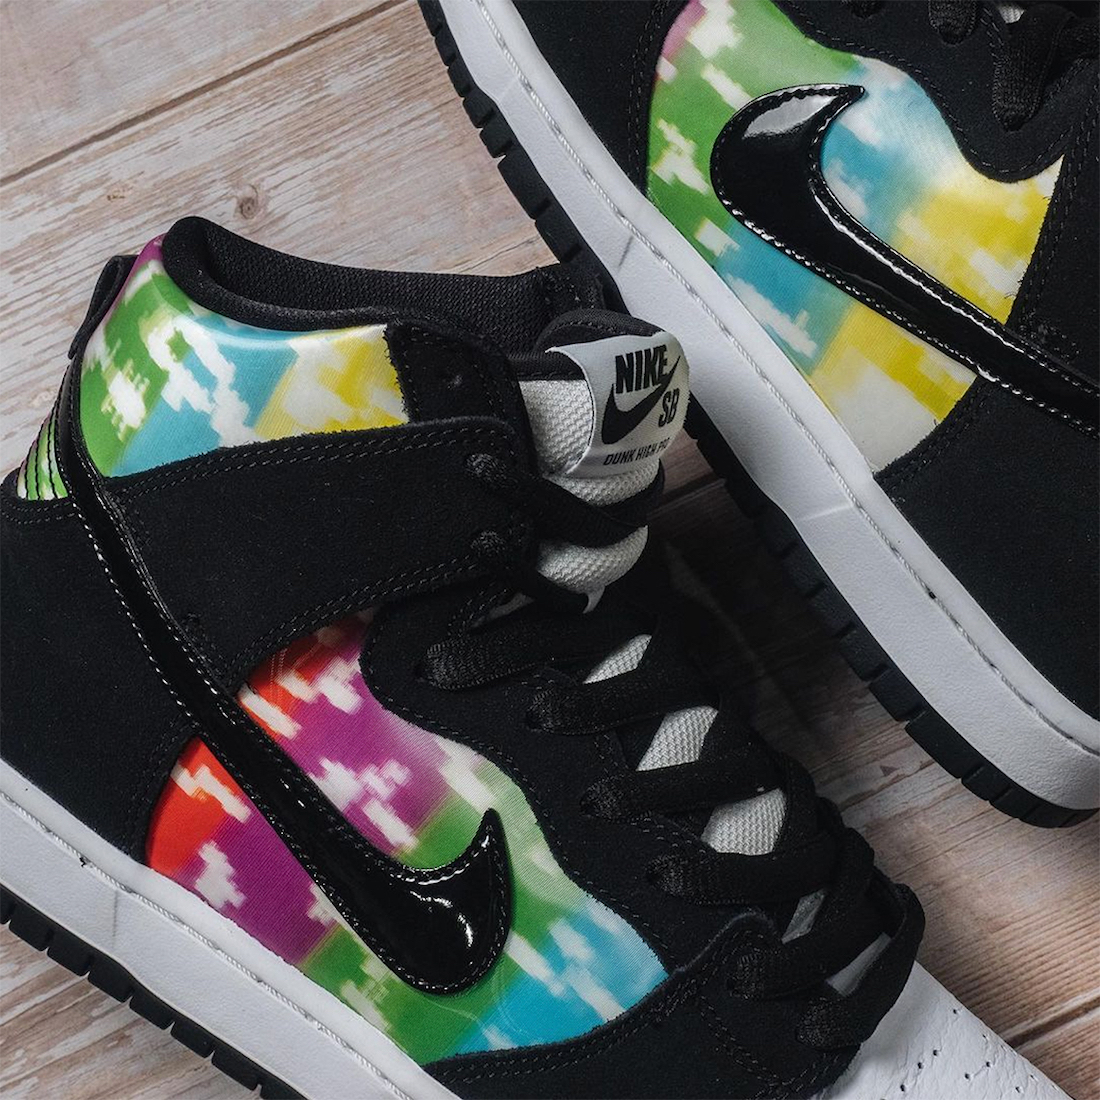 Nike SB Dunk High TV Signal Color Bars Release Date Info